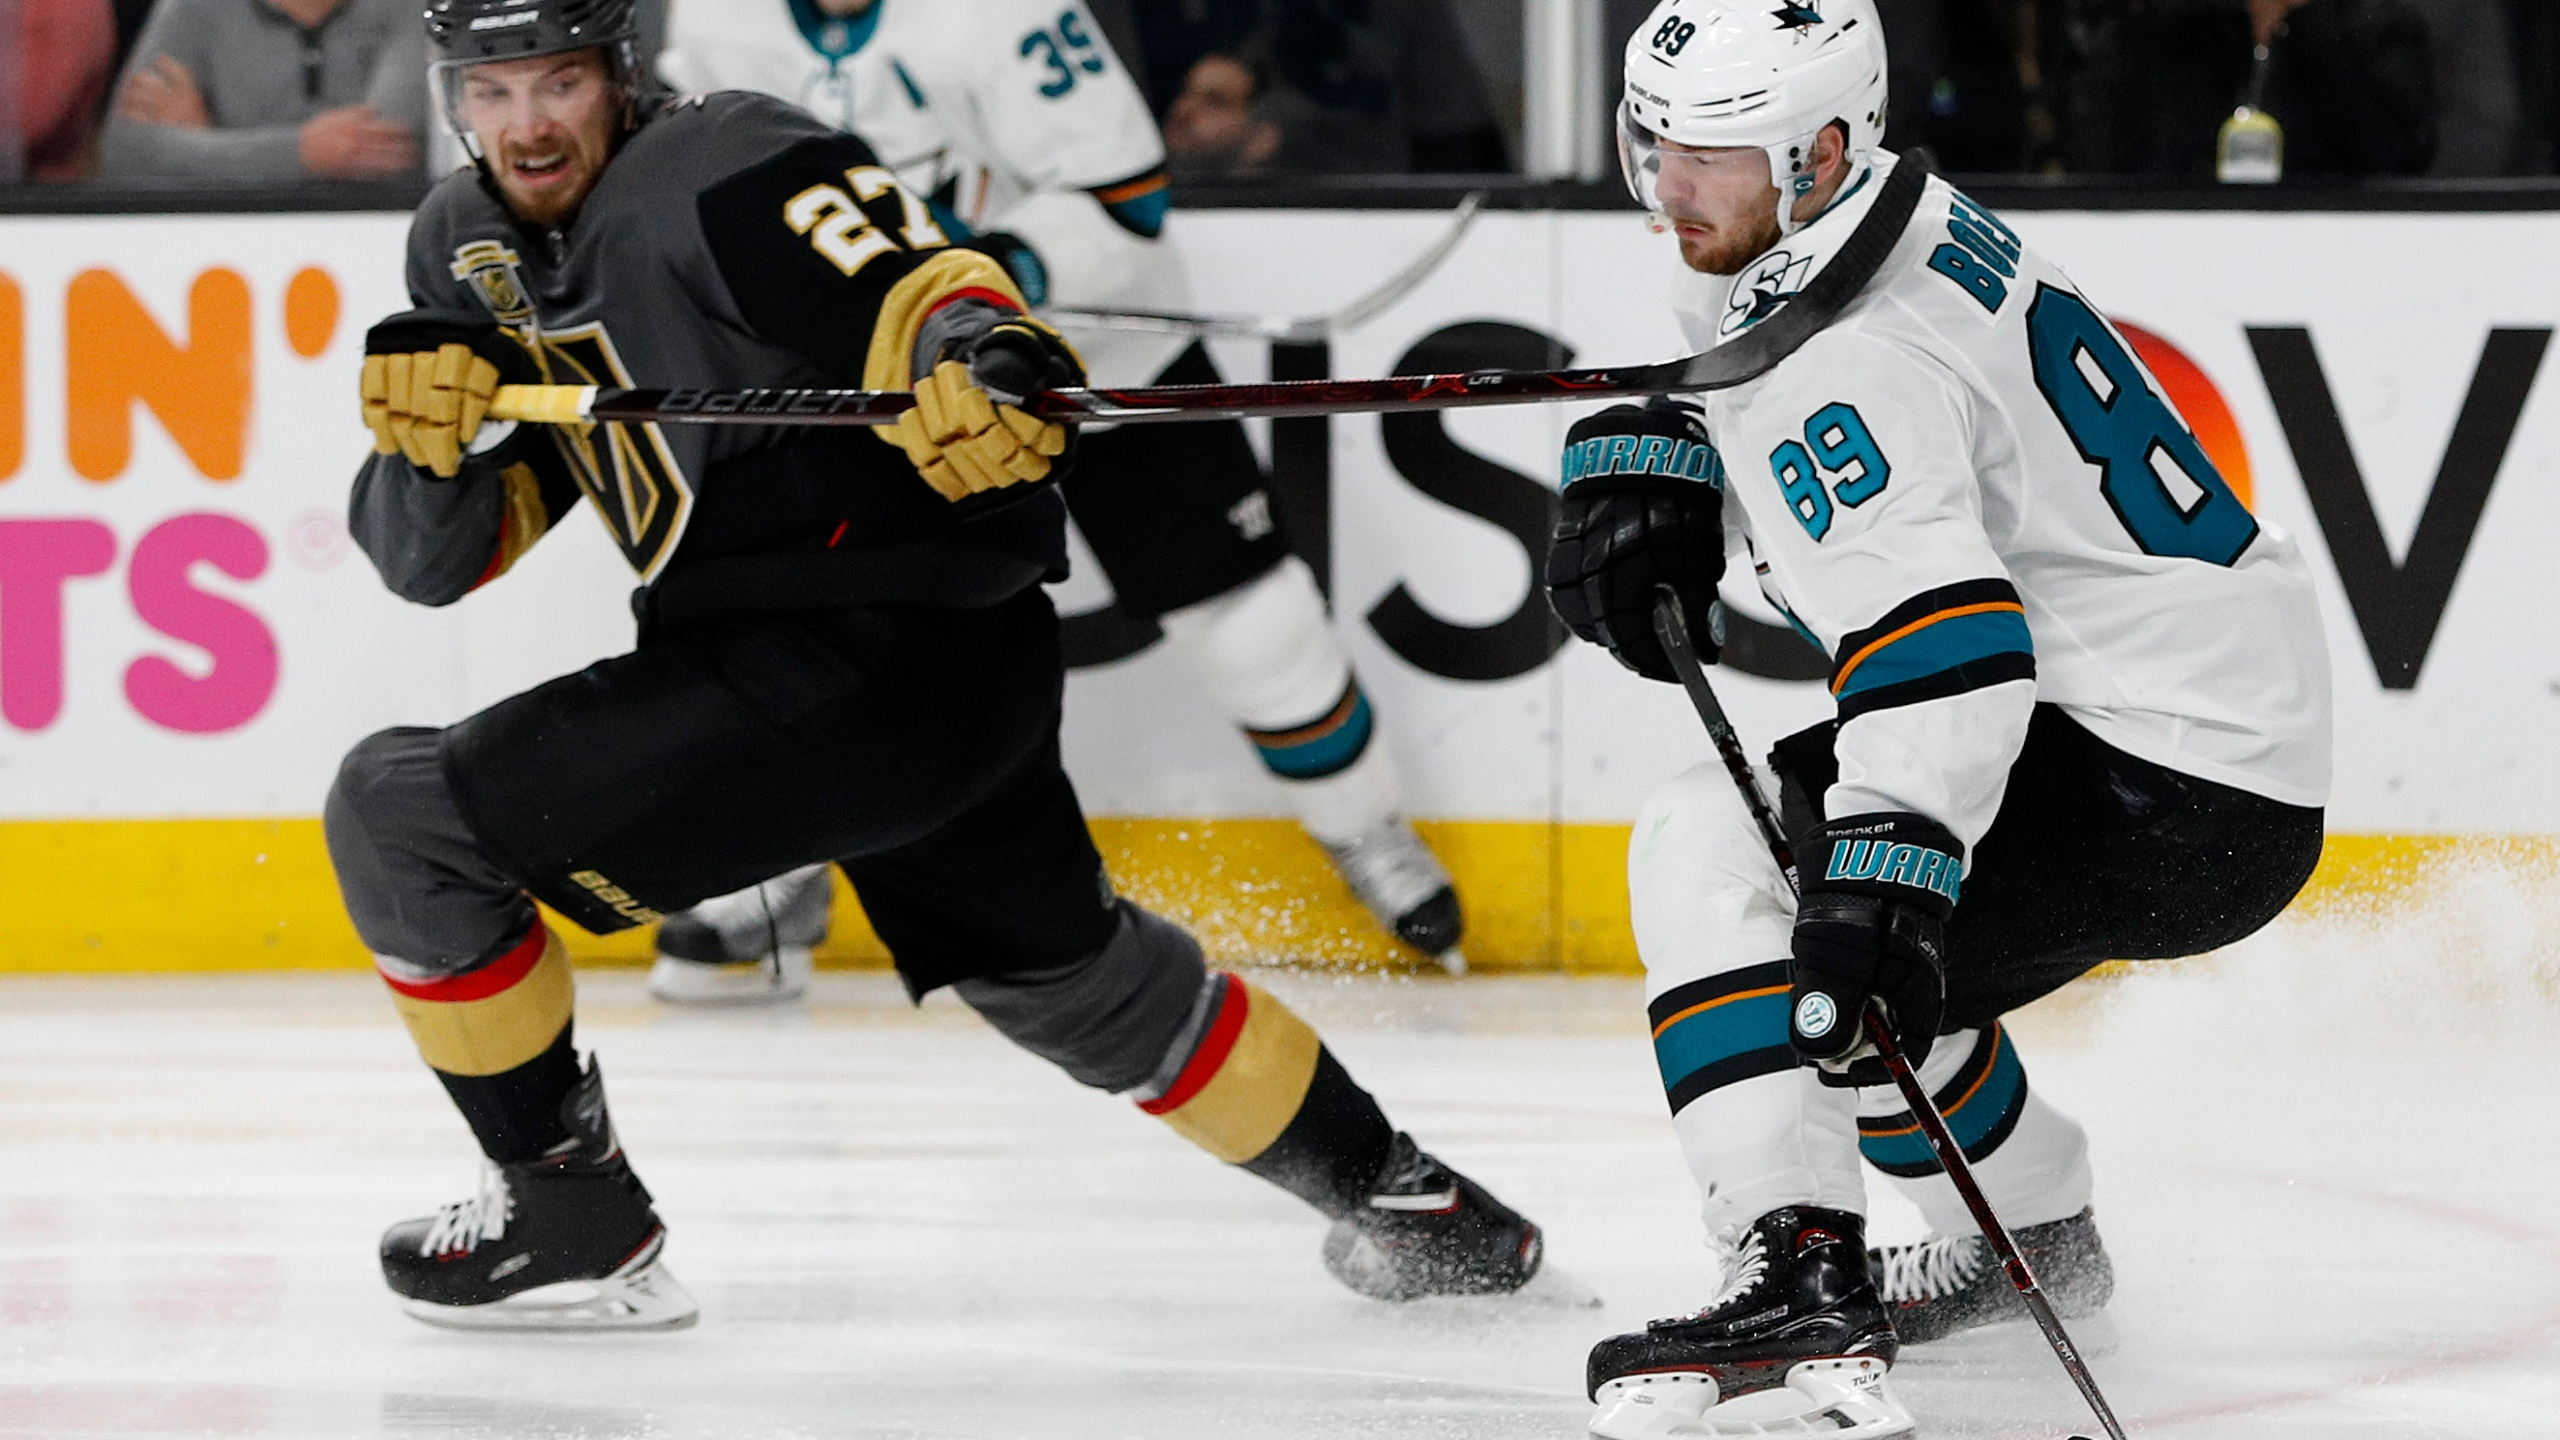 Sharks_Golden_Knights_Hockey_44689-159532.jpg11582976